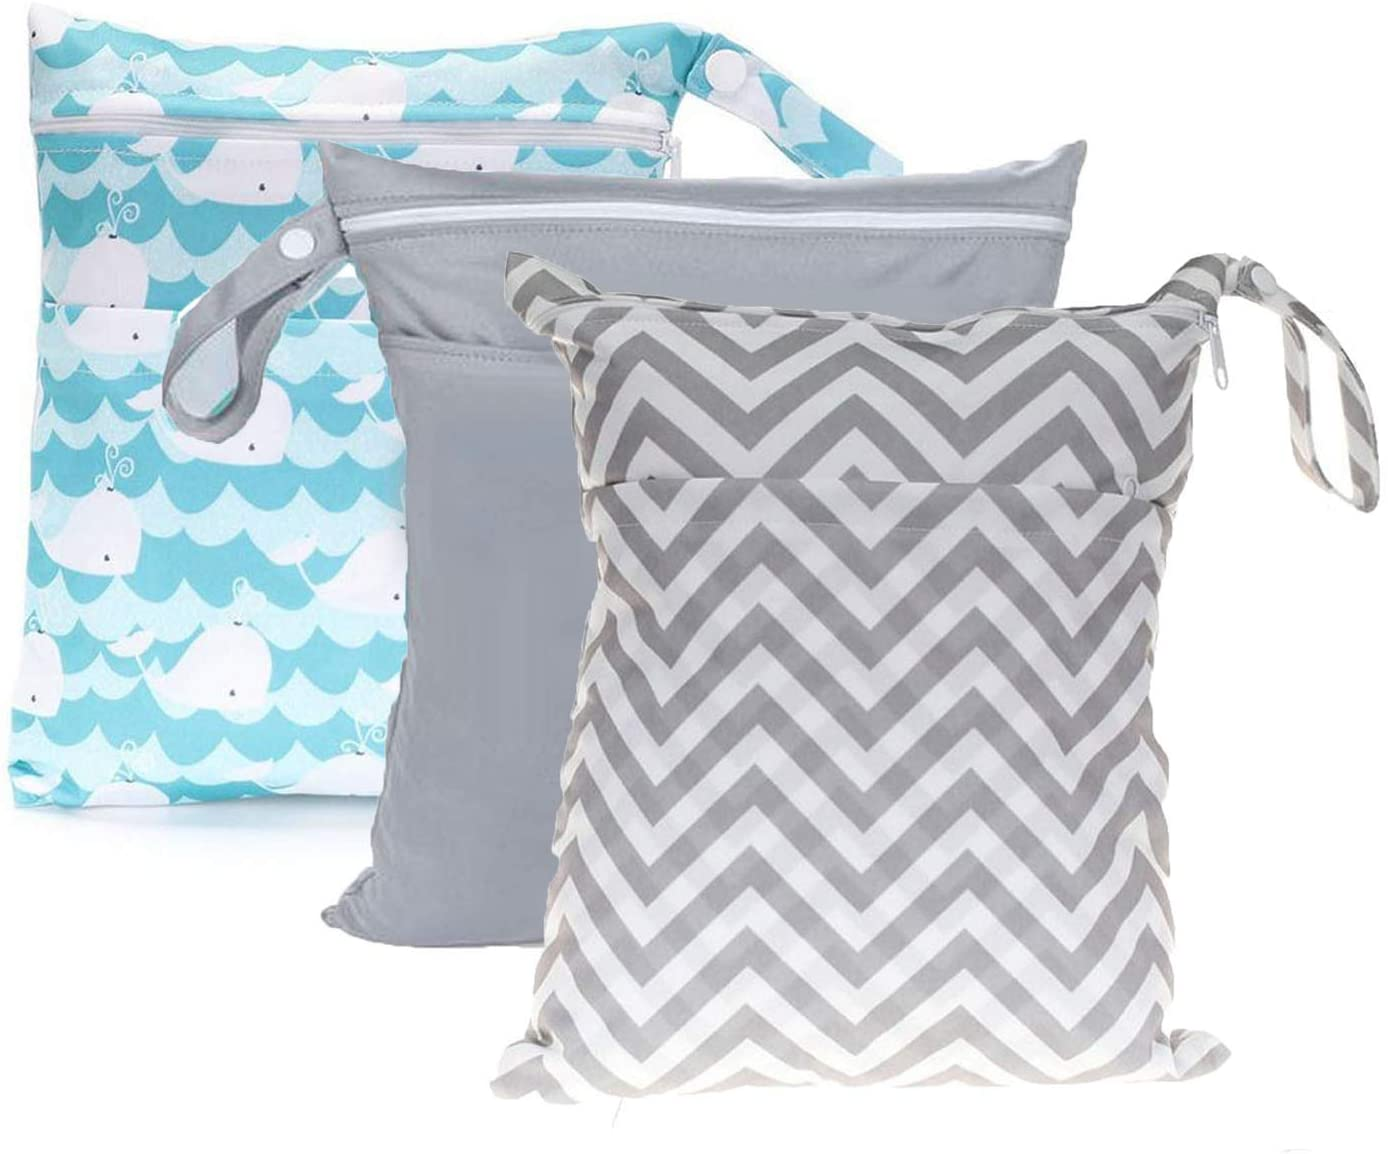 TLoowy-Clearance Wet Dry Bags for Baby Cloth Diapers, Washable Travel Bags, Beach, Pool, Gym Bag for Swimsuits & Wet Clothes with Dual Zipper Pockets 3 Pack